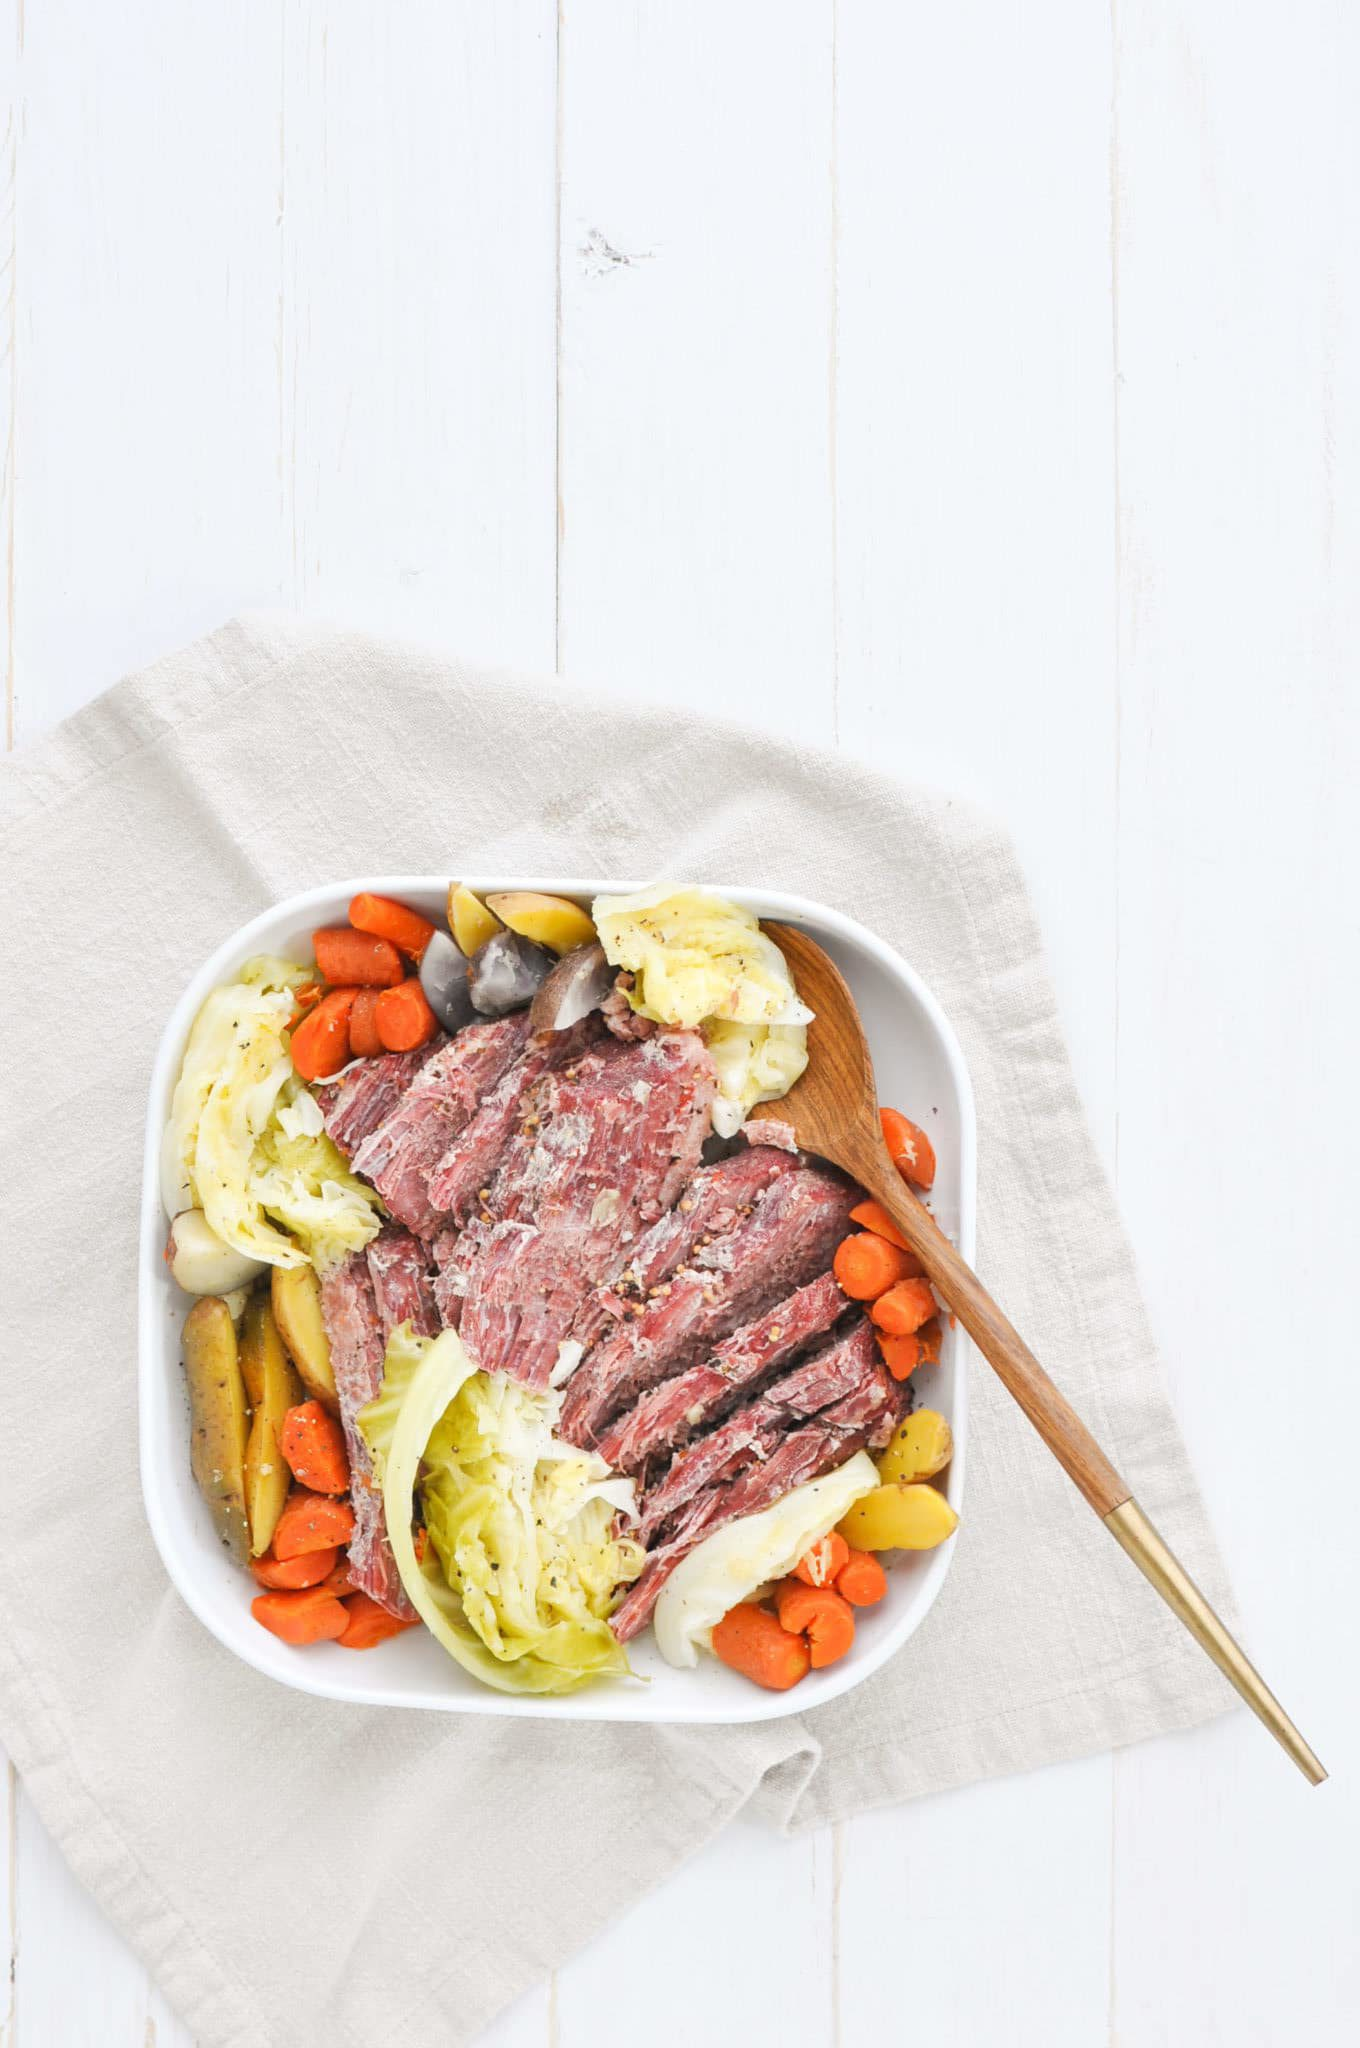 Corned Beef and Cabbage on Plate with Serving Spoon